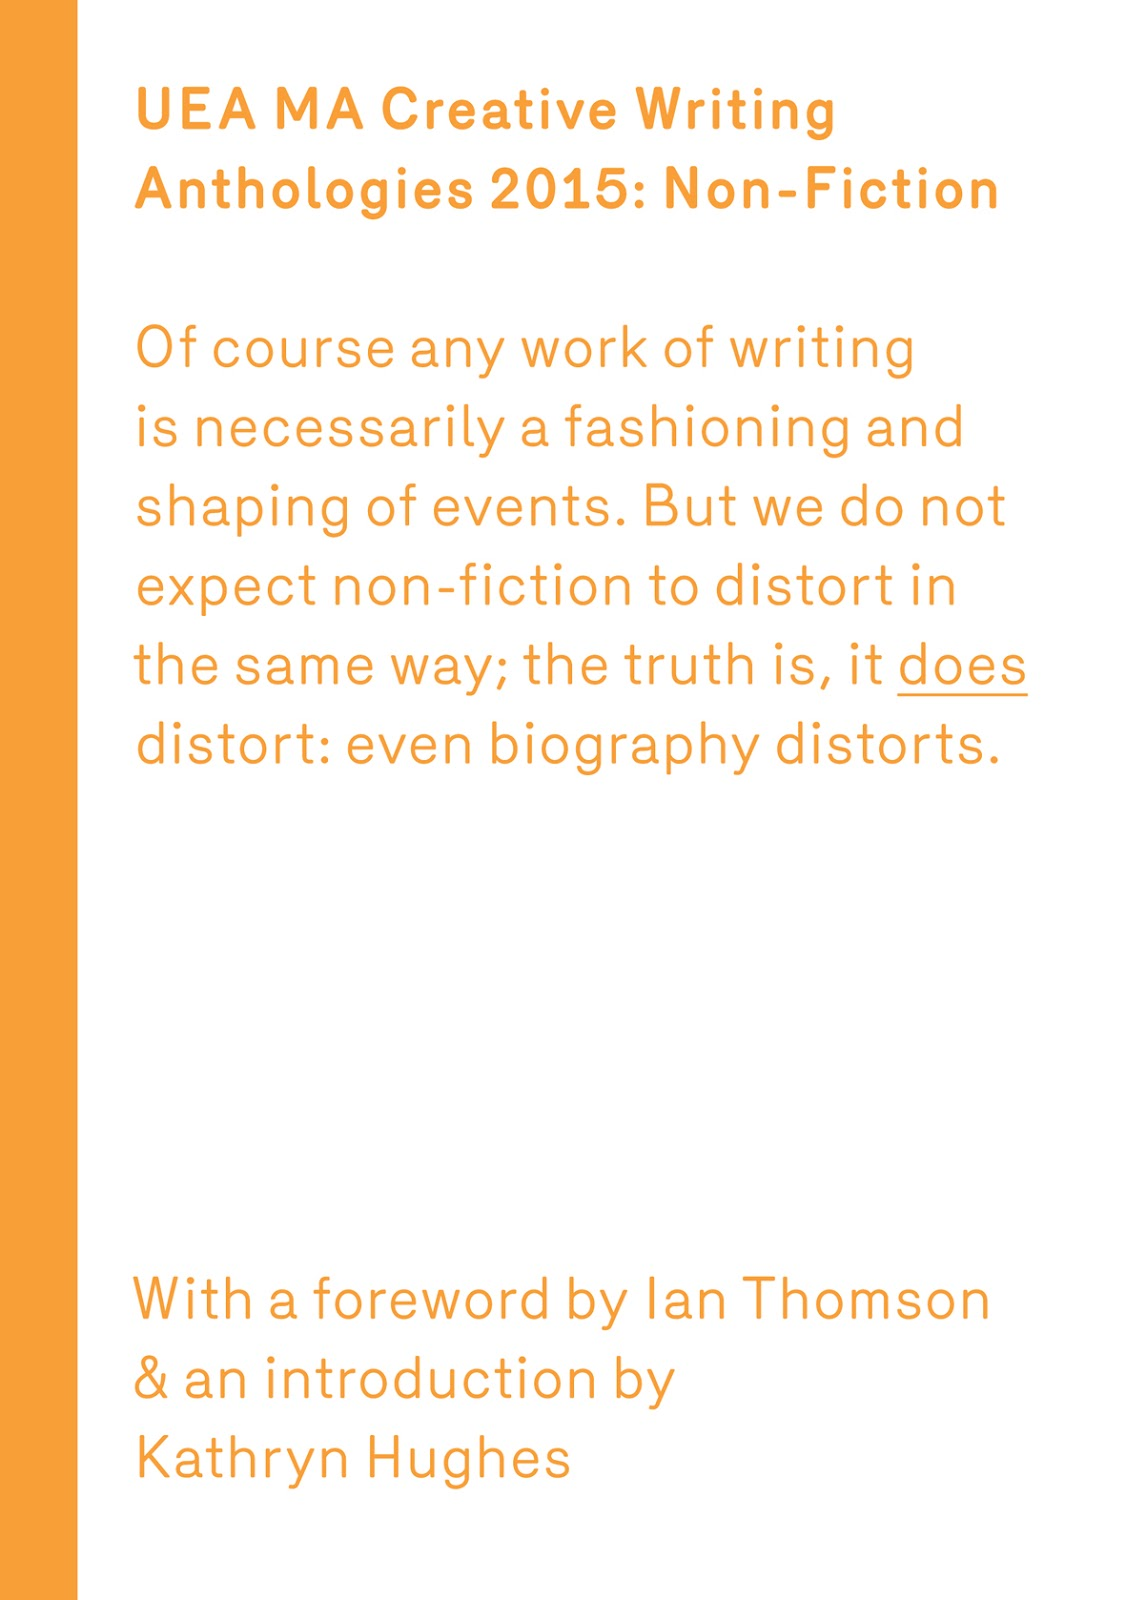 UEA Creative Writing Anthology Non-Fiction 2015